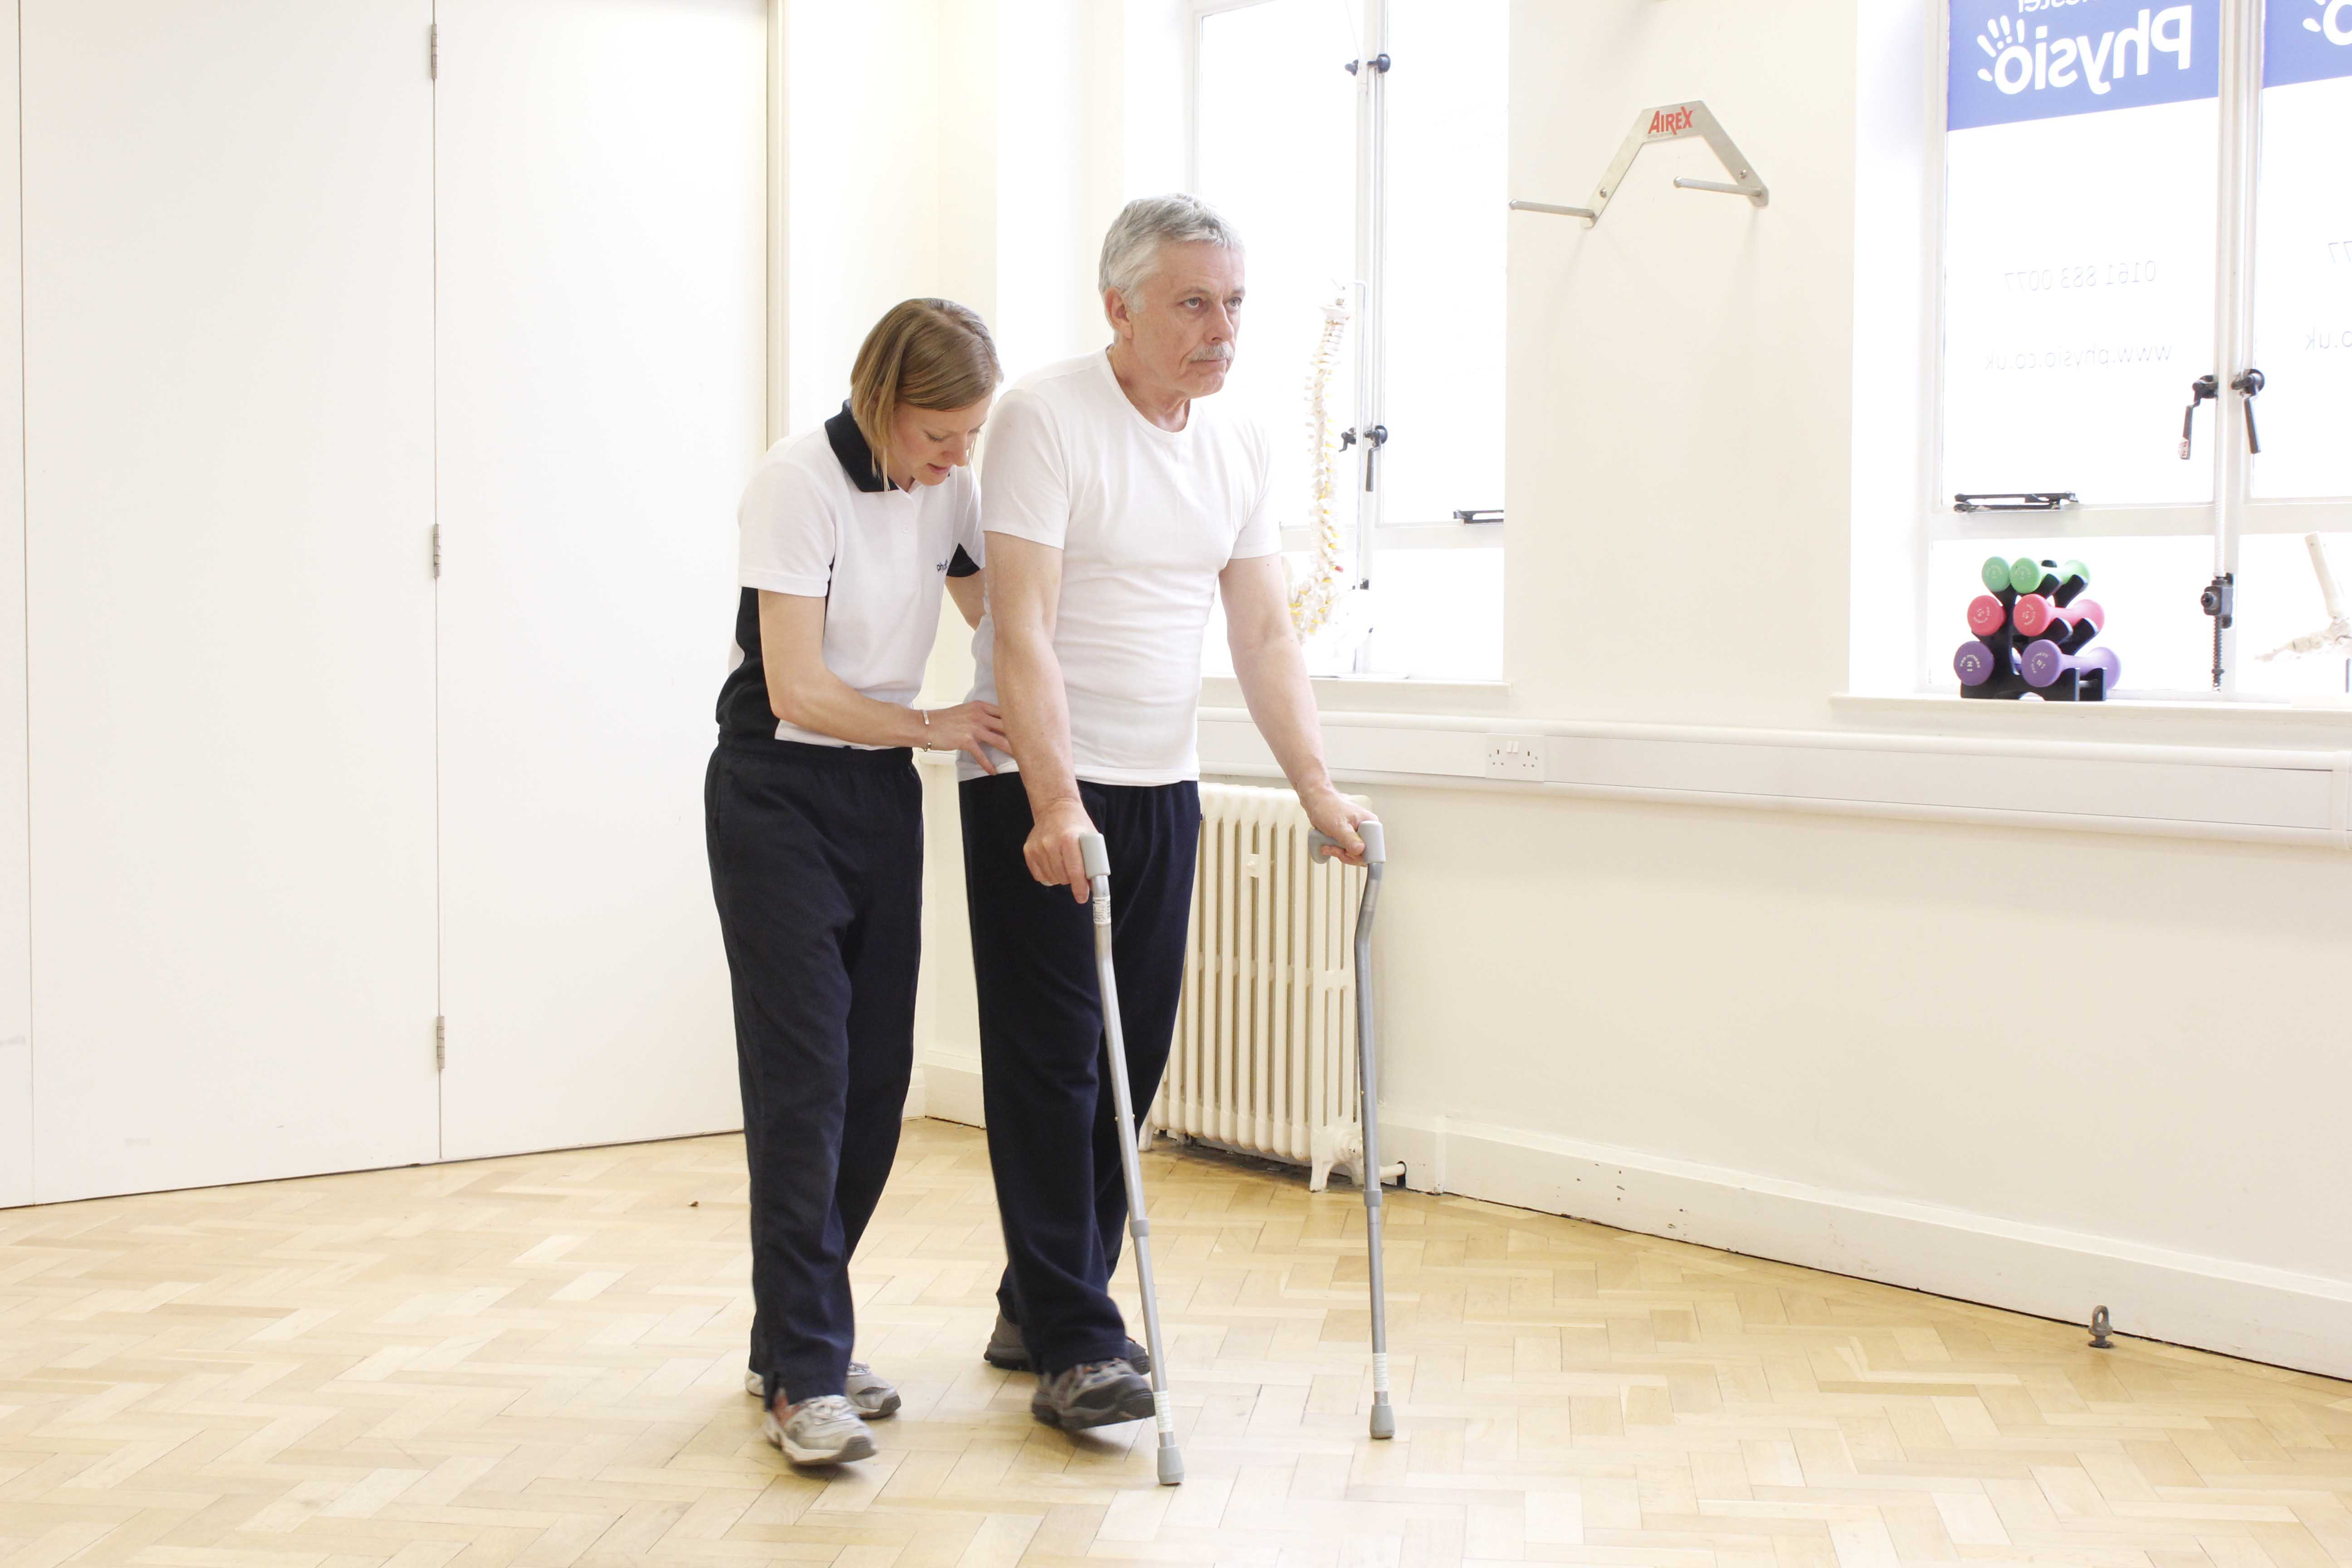 Neurological physiotherapist supervising mobility exercises using a pair of walking sticks